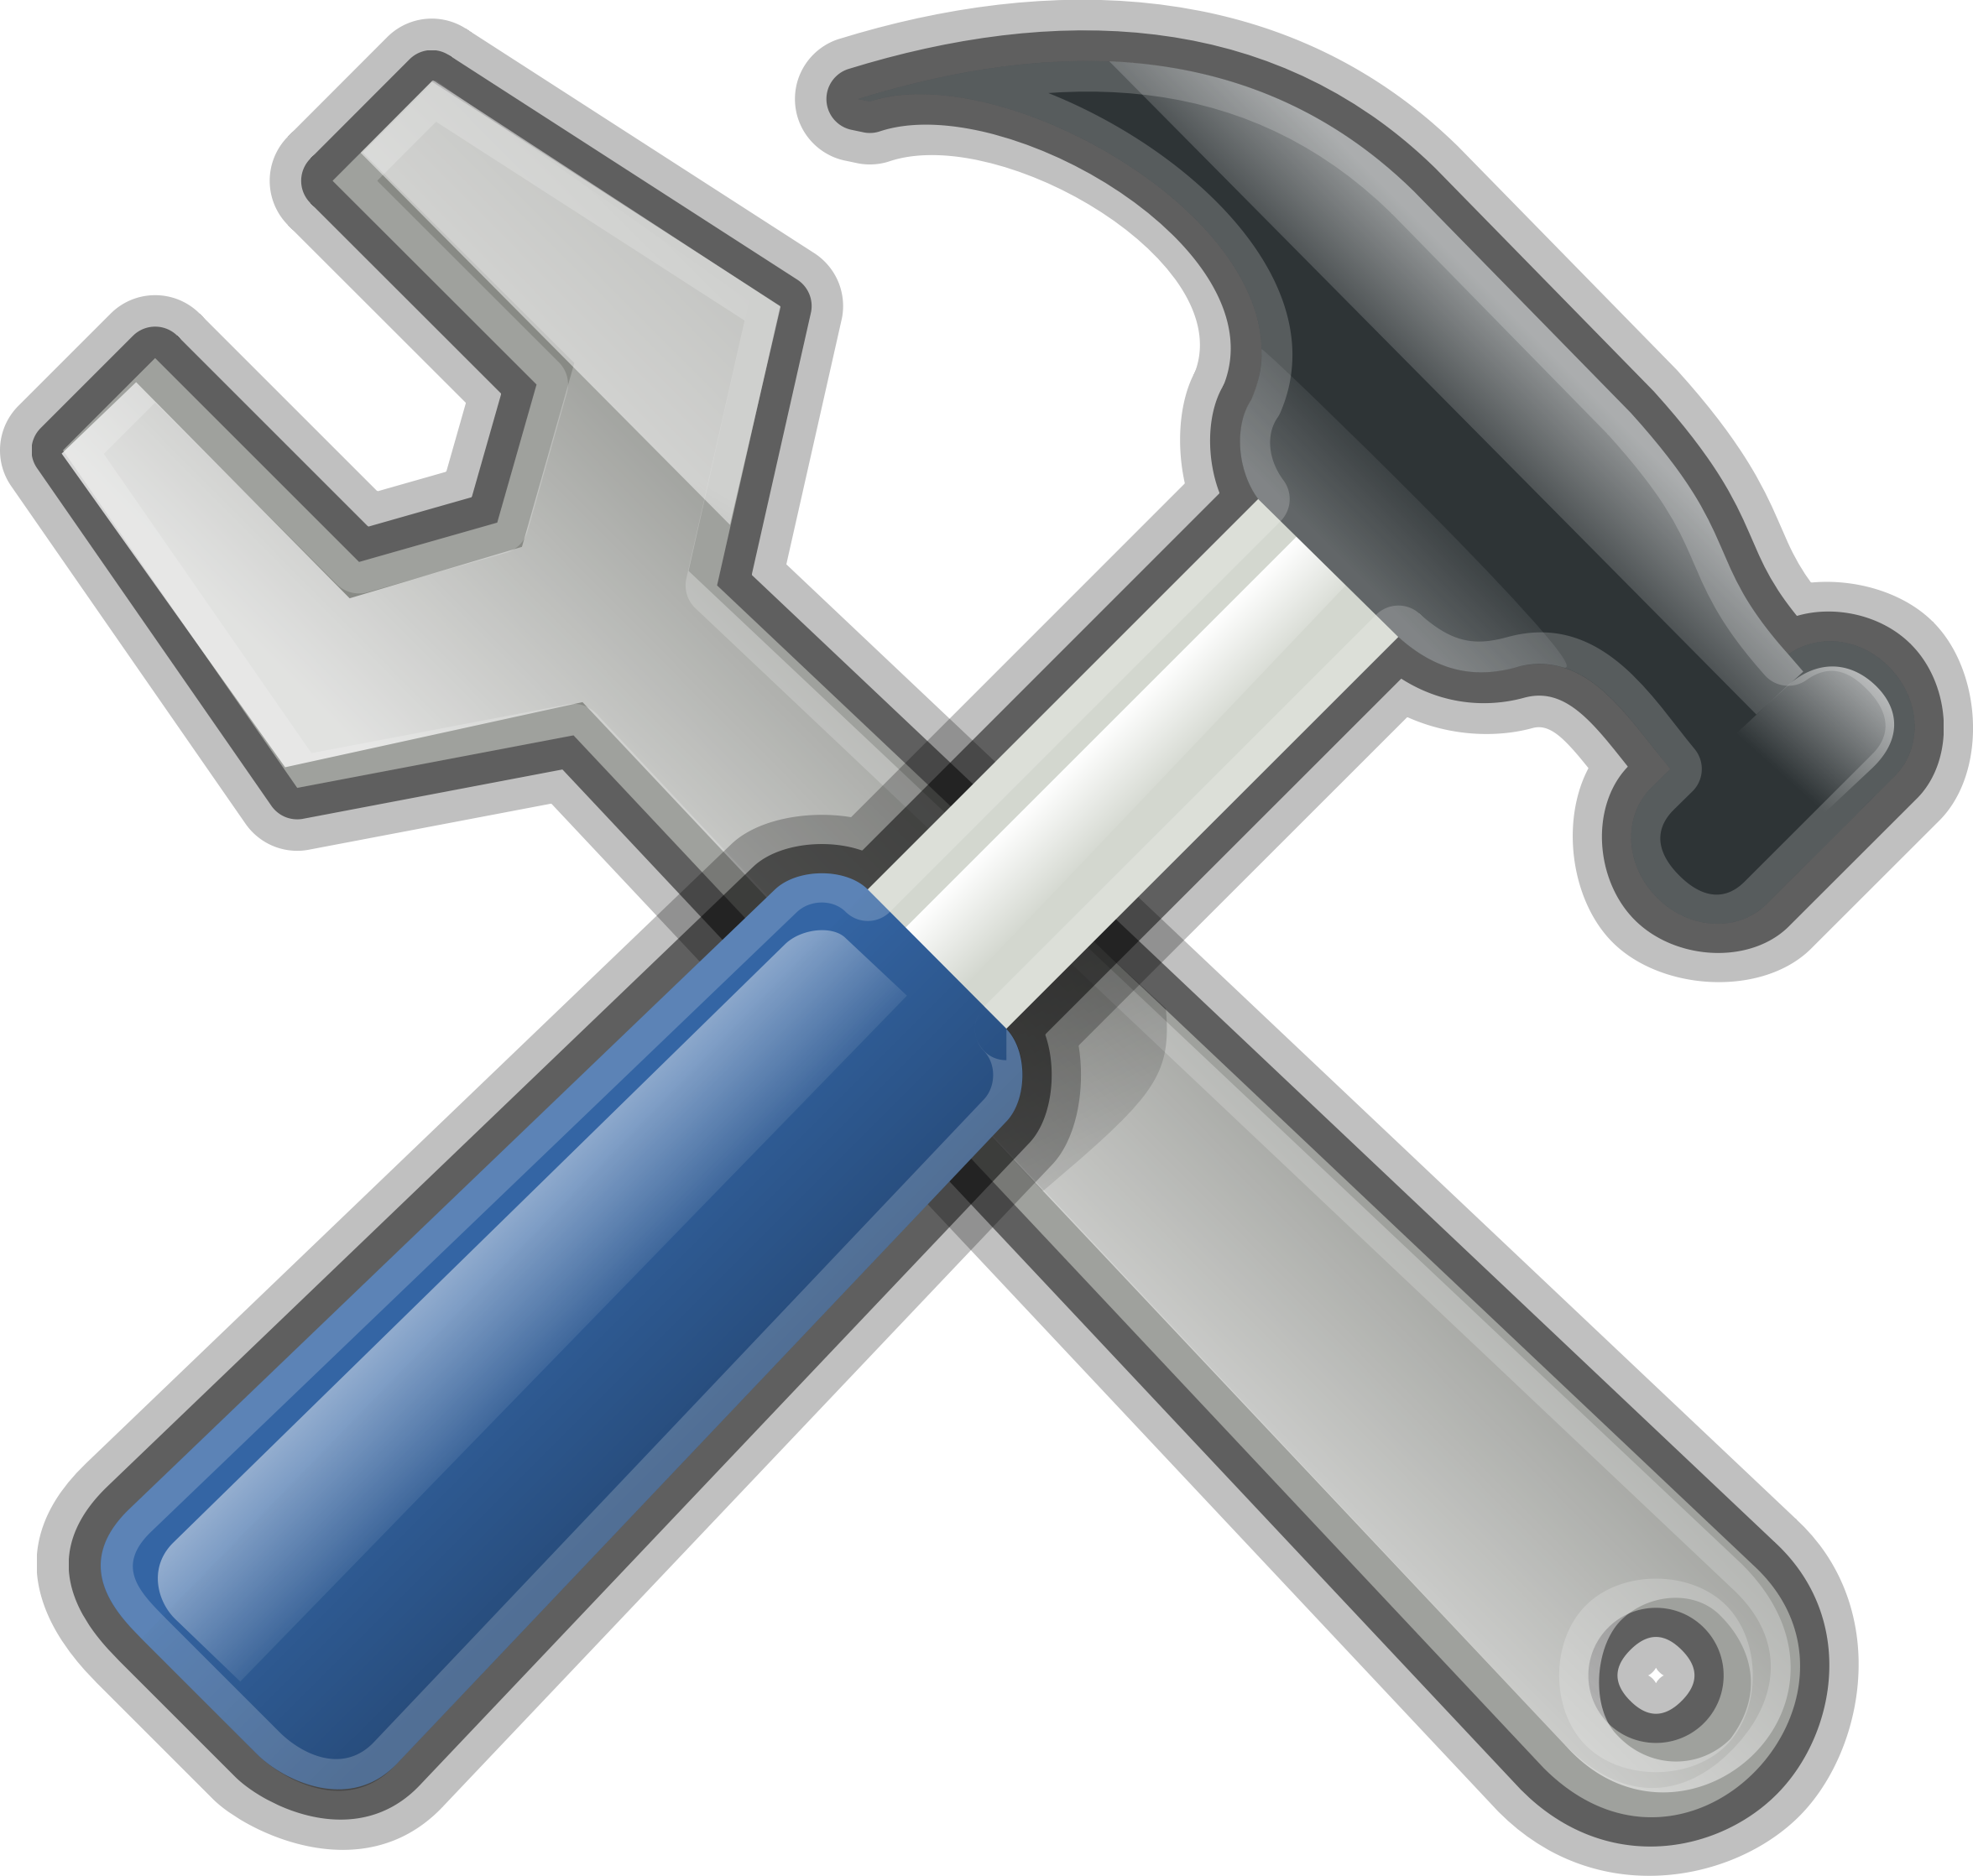 Tools, Hammer, Spanner by Andy